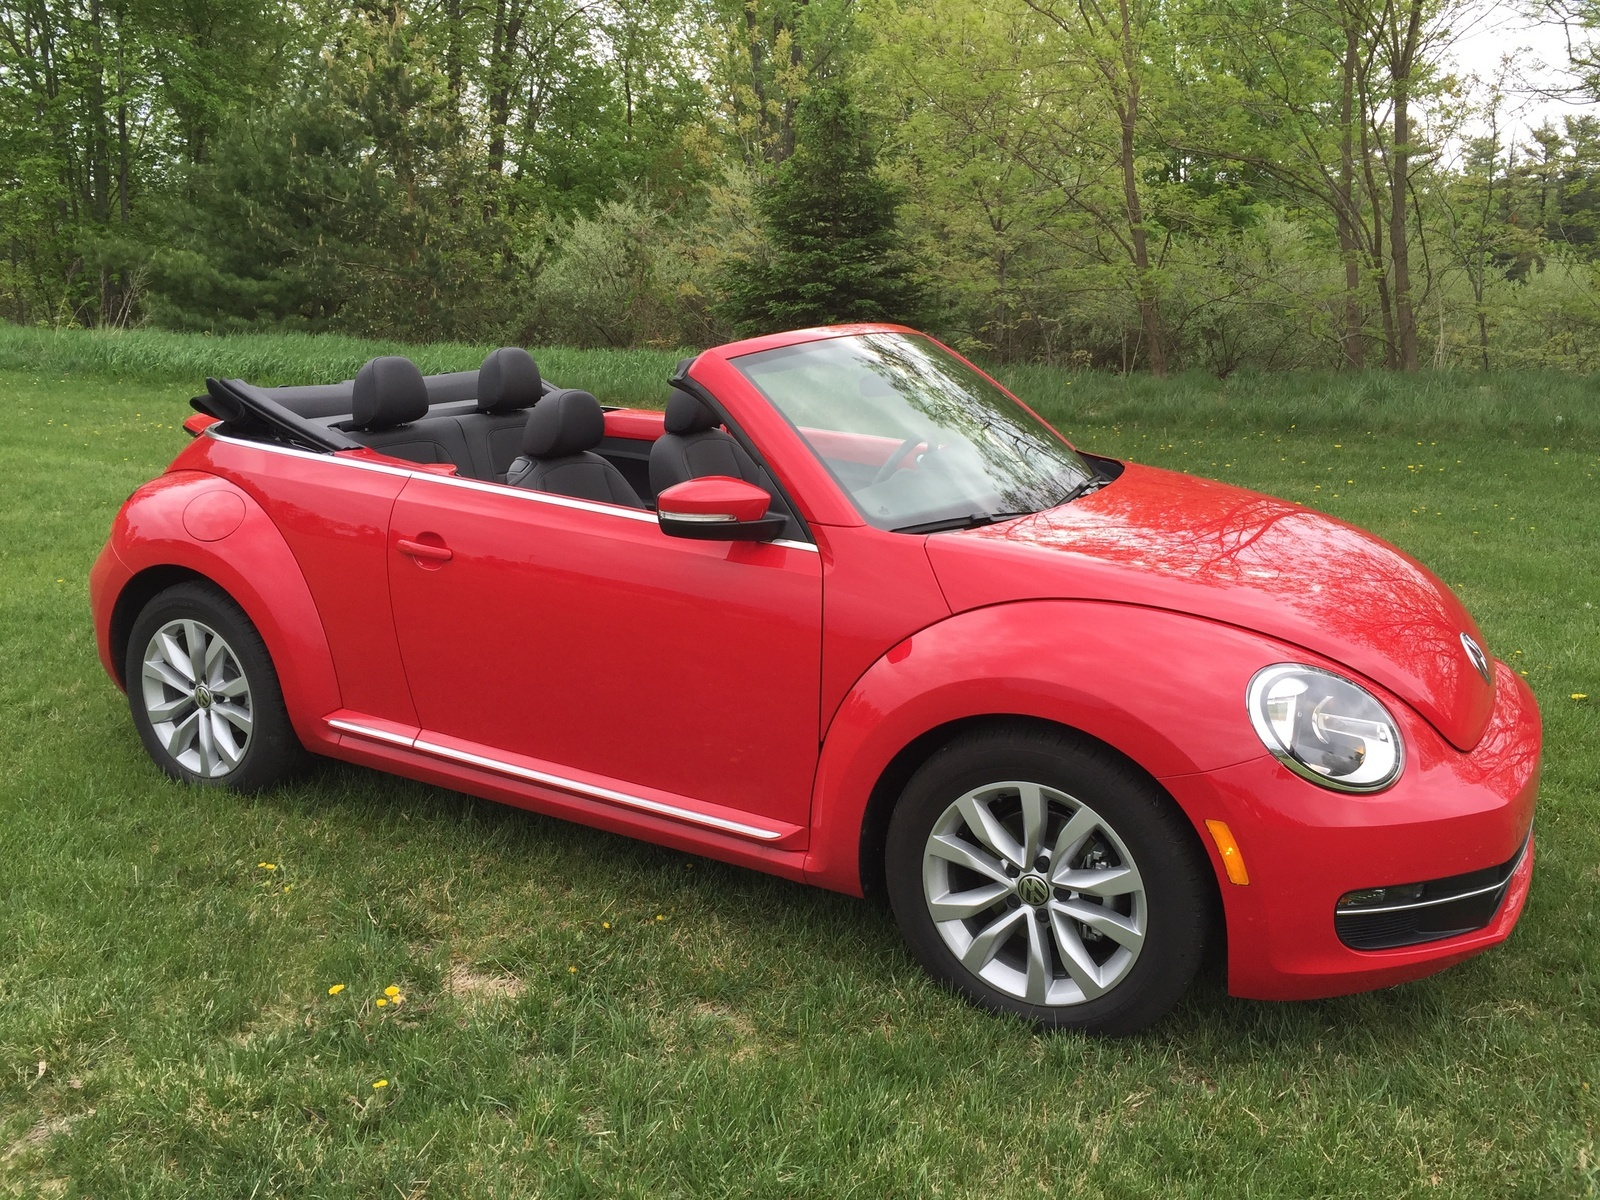 Beetle Cars For Sale Near Me >> 2015 Volkswagen Beetle - Overview - CarGurus